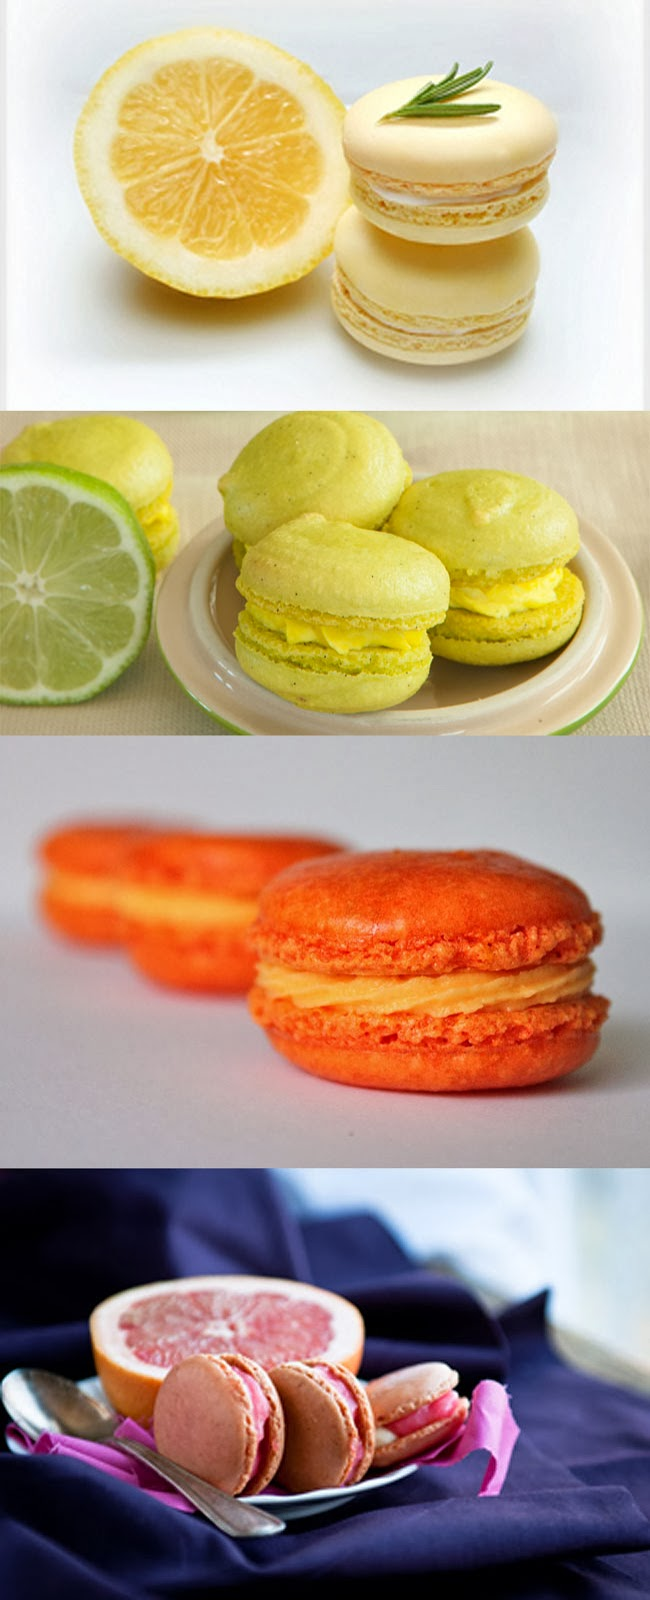 Lemon, lime, orange, grapefruit macarons